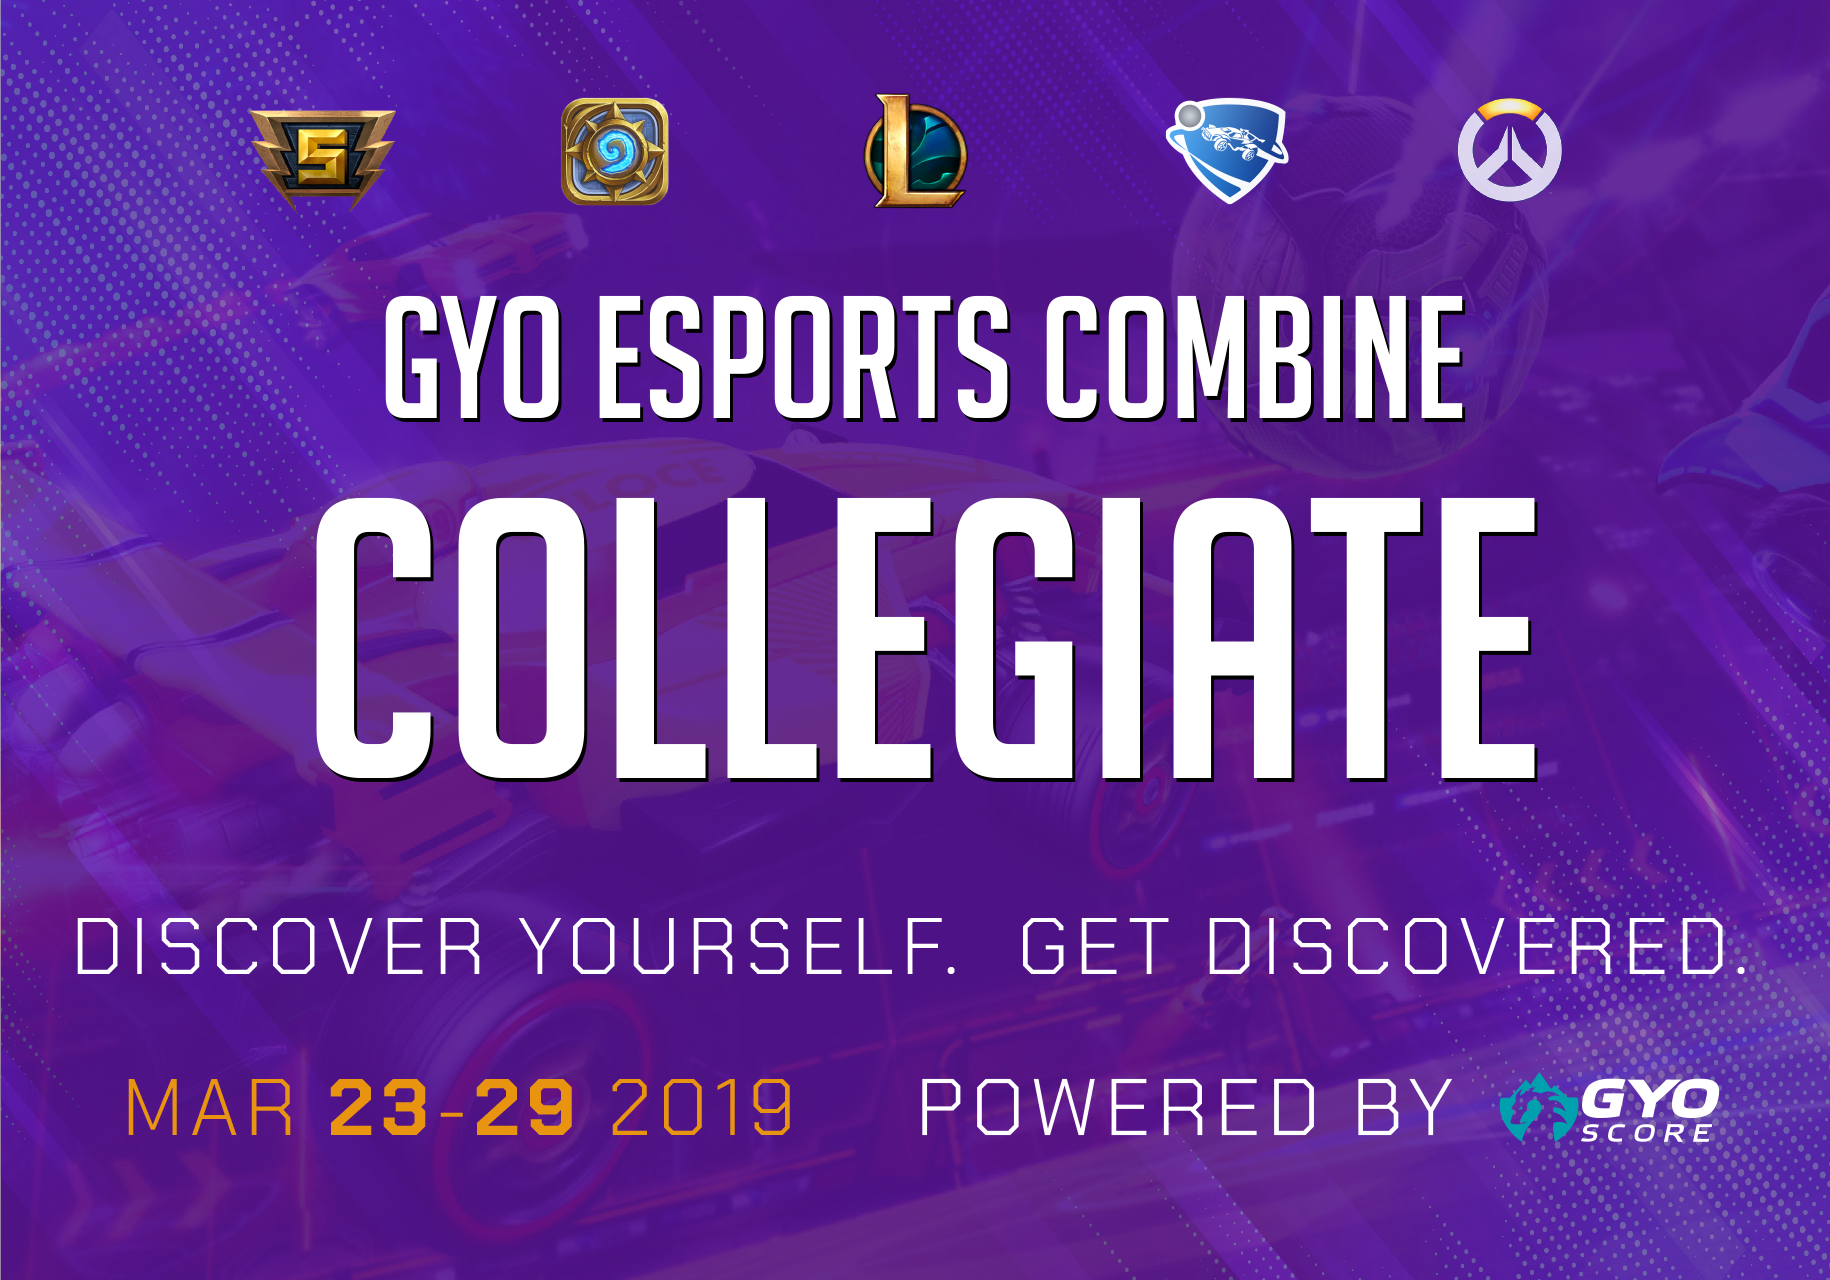 Collegiate Esports Combine - March